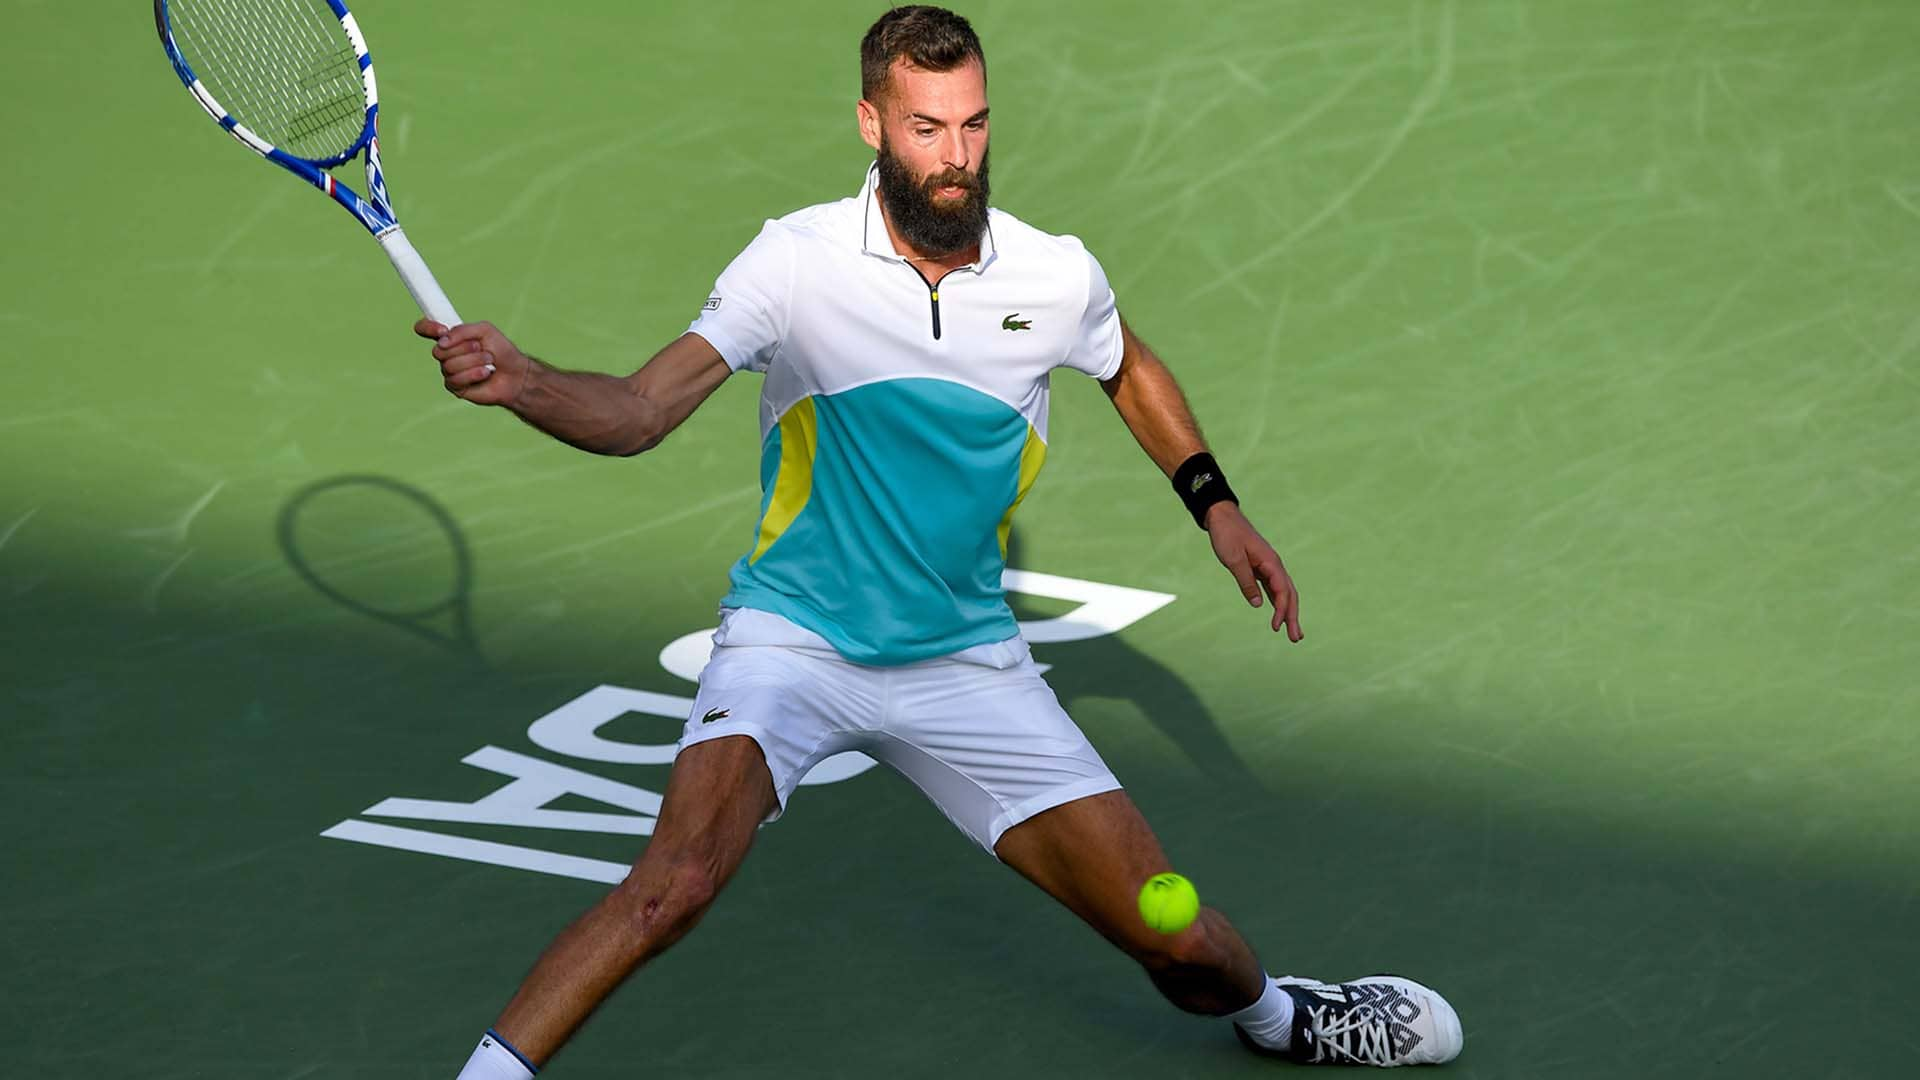 Benoit Paire will face Richard Gasquet in the Dubai Duty Free Tennis Championships second round.